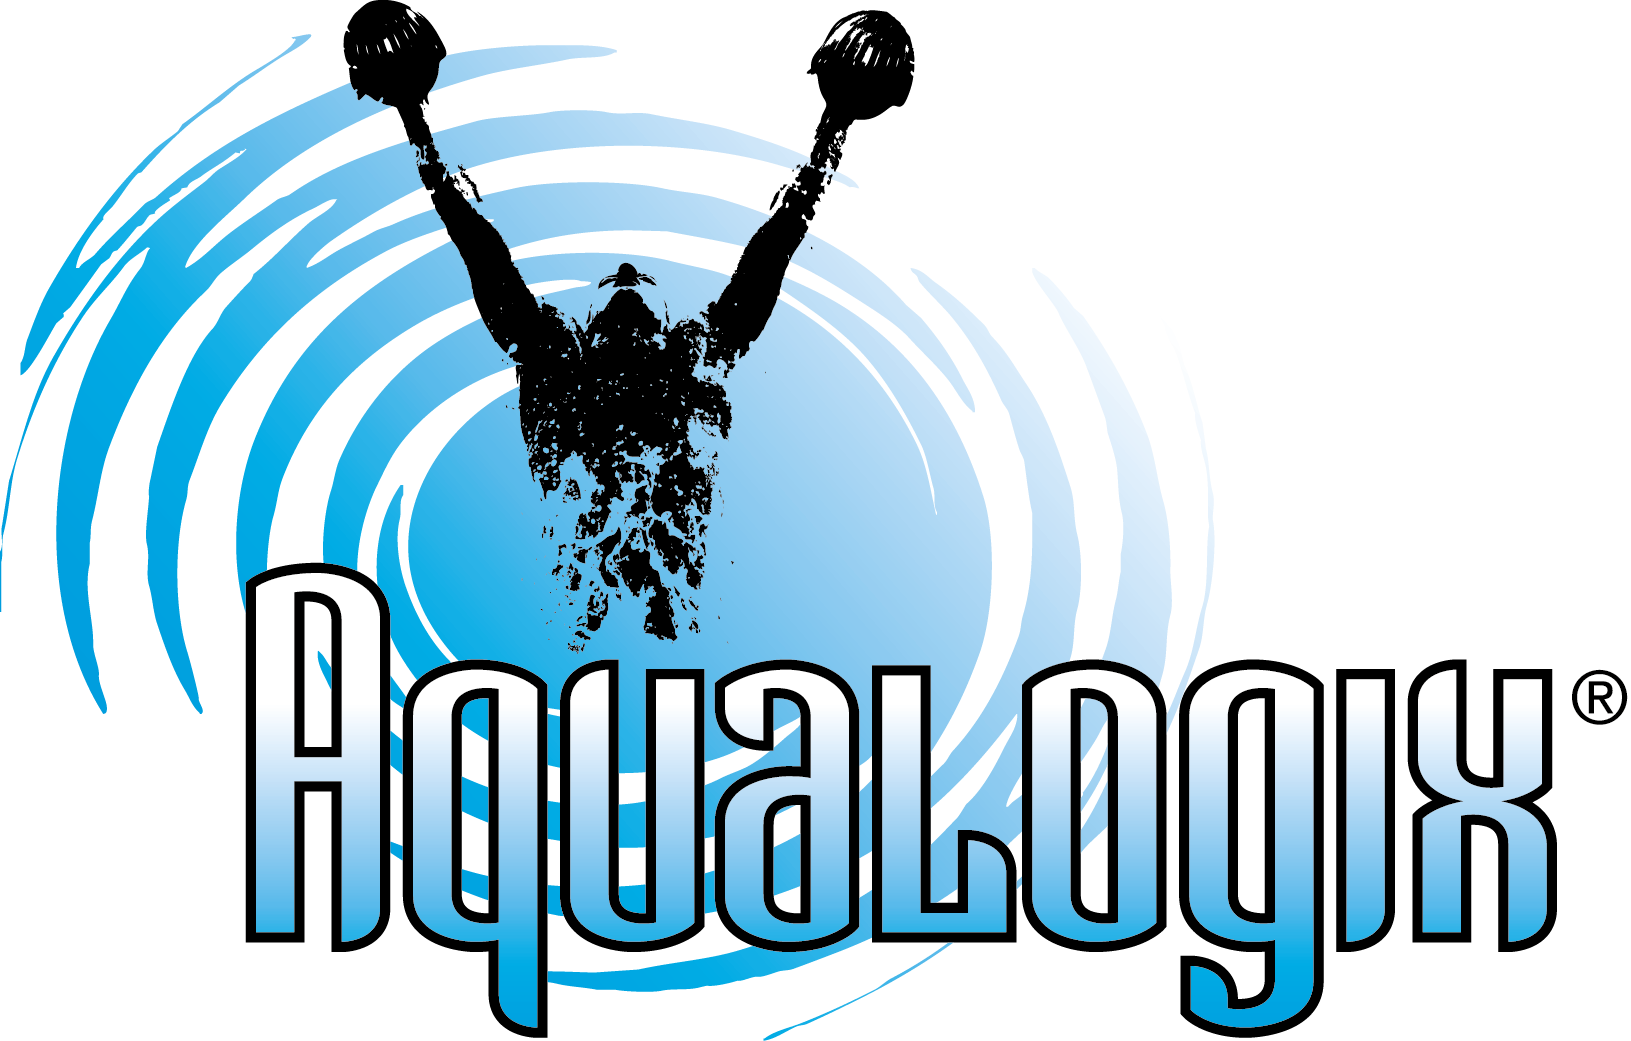 Aqualogix Max Resistance Slow Bells Water Fitness Pool Gym Barbells Exercise Fitness & Jogging Aquafitness-Geräte